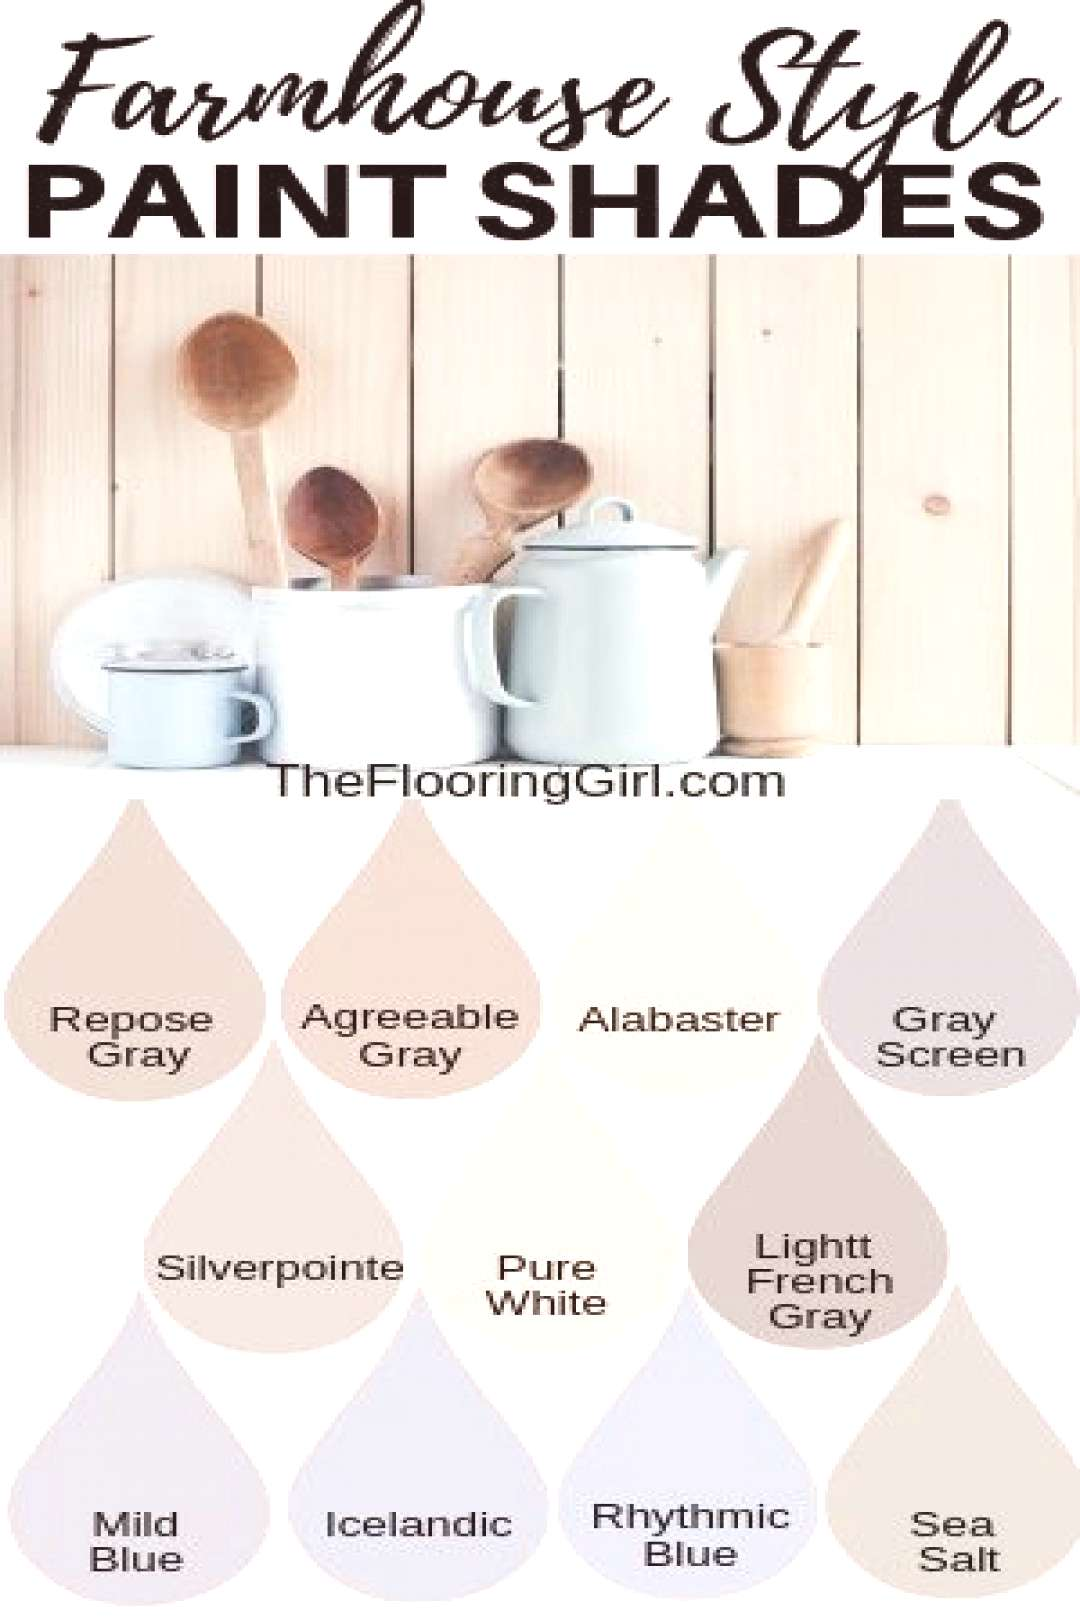 Farmhouse style paint shades from Sherwin Williams. These modern farmhouse style shades will transf